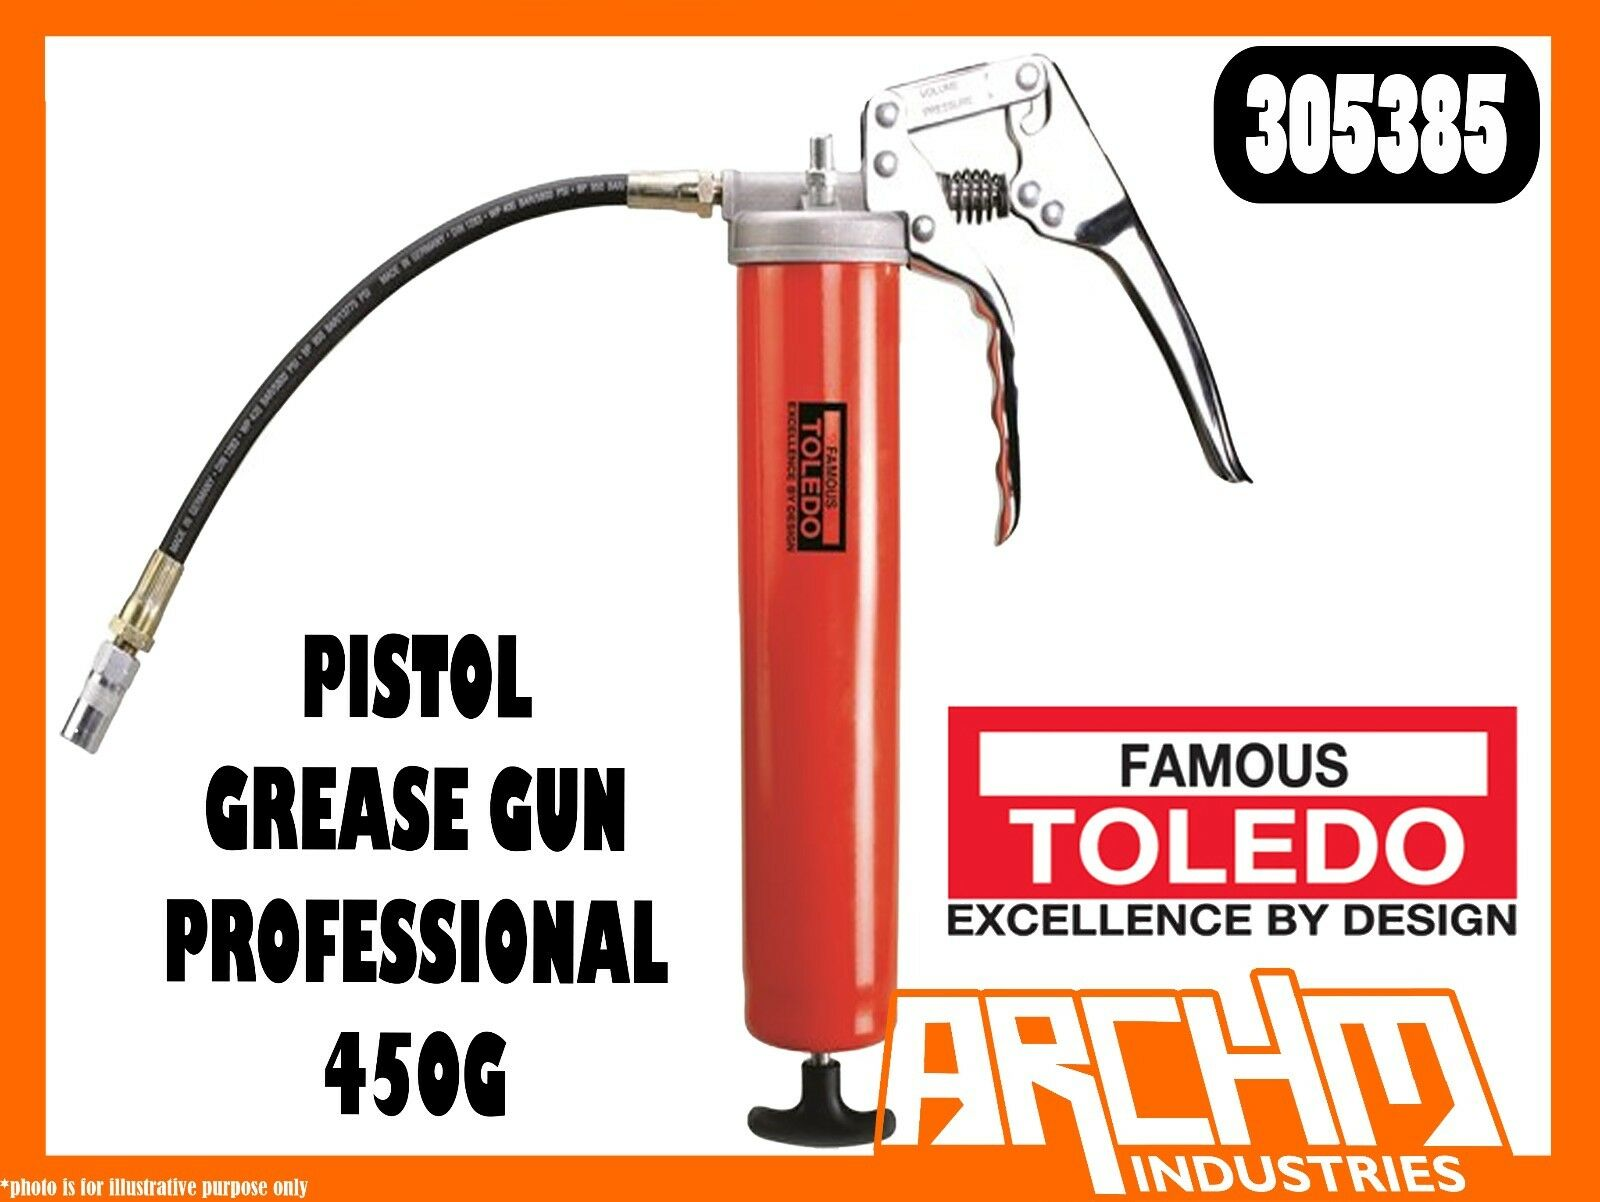 TOLEDO 305385 - PISTOL GREASE GUN - PROFESSIONAL 450G - ERGONOMIC ONE HAND